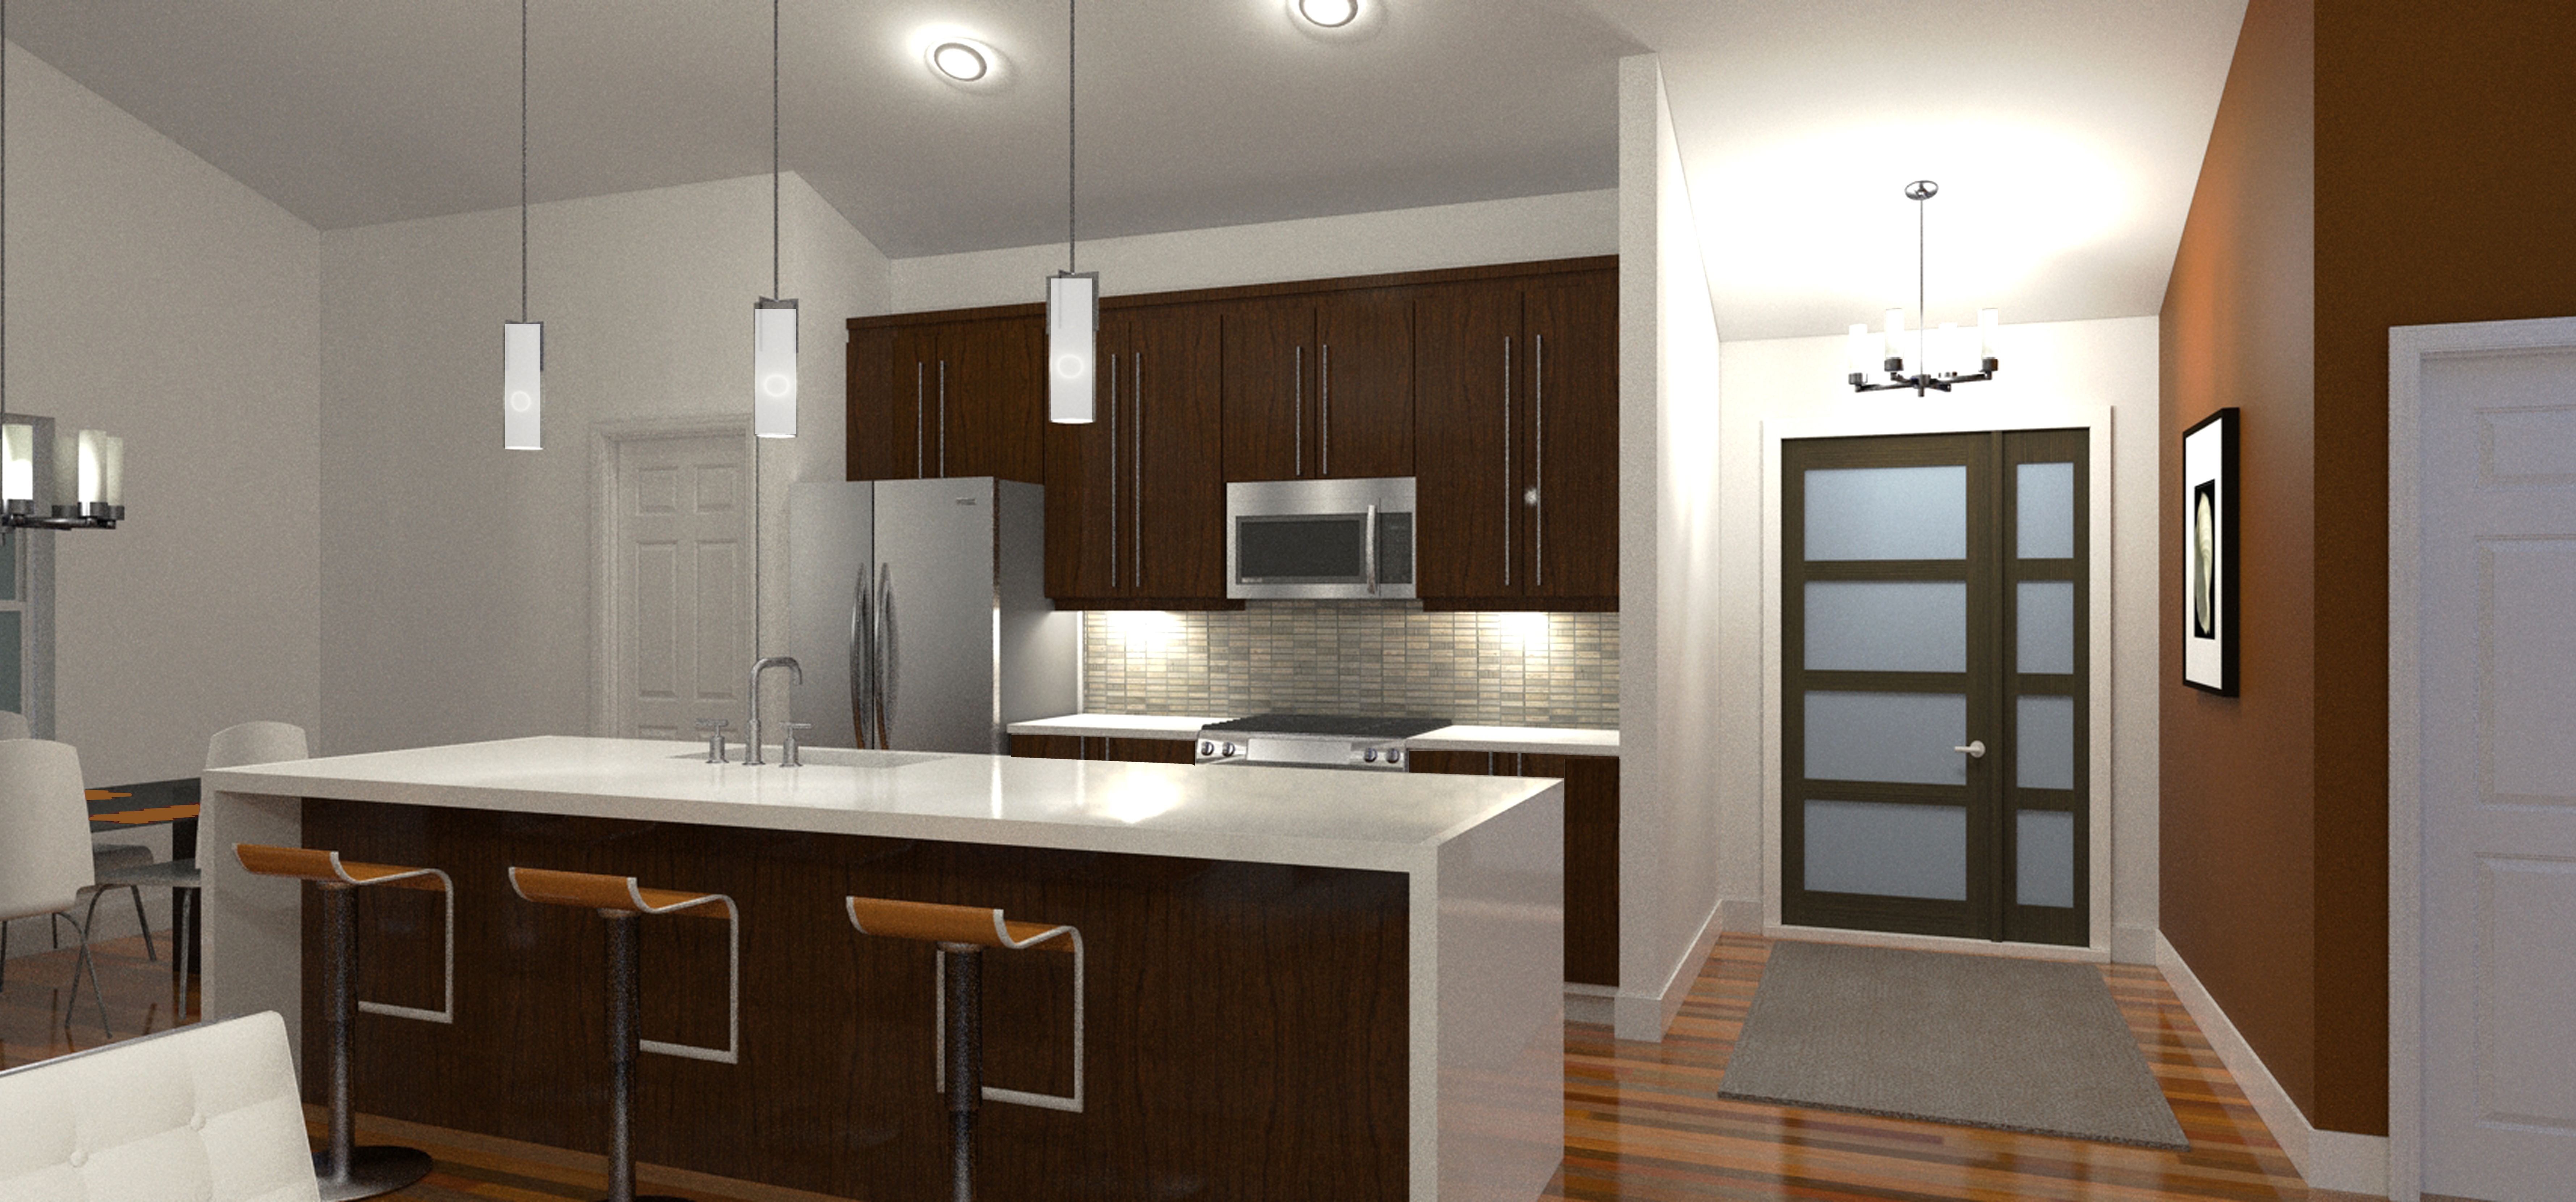 Redone kitchen 2.jpg